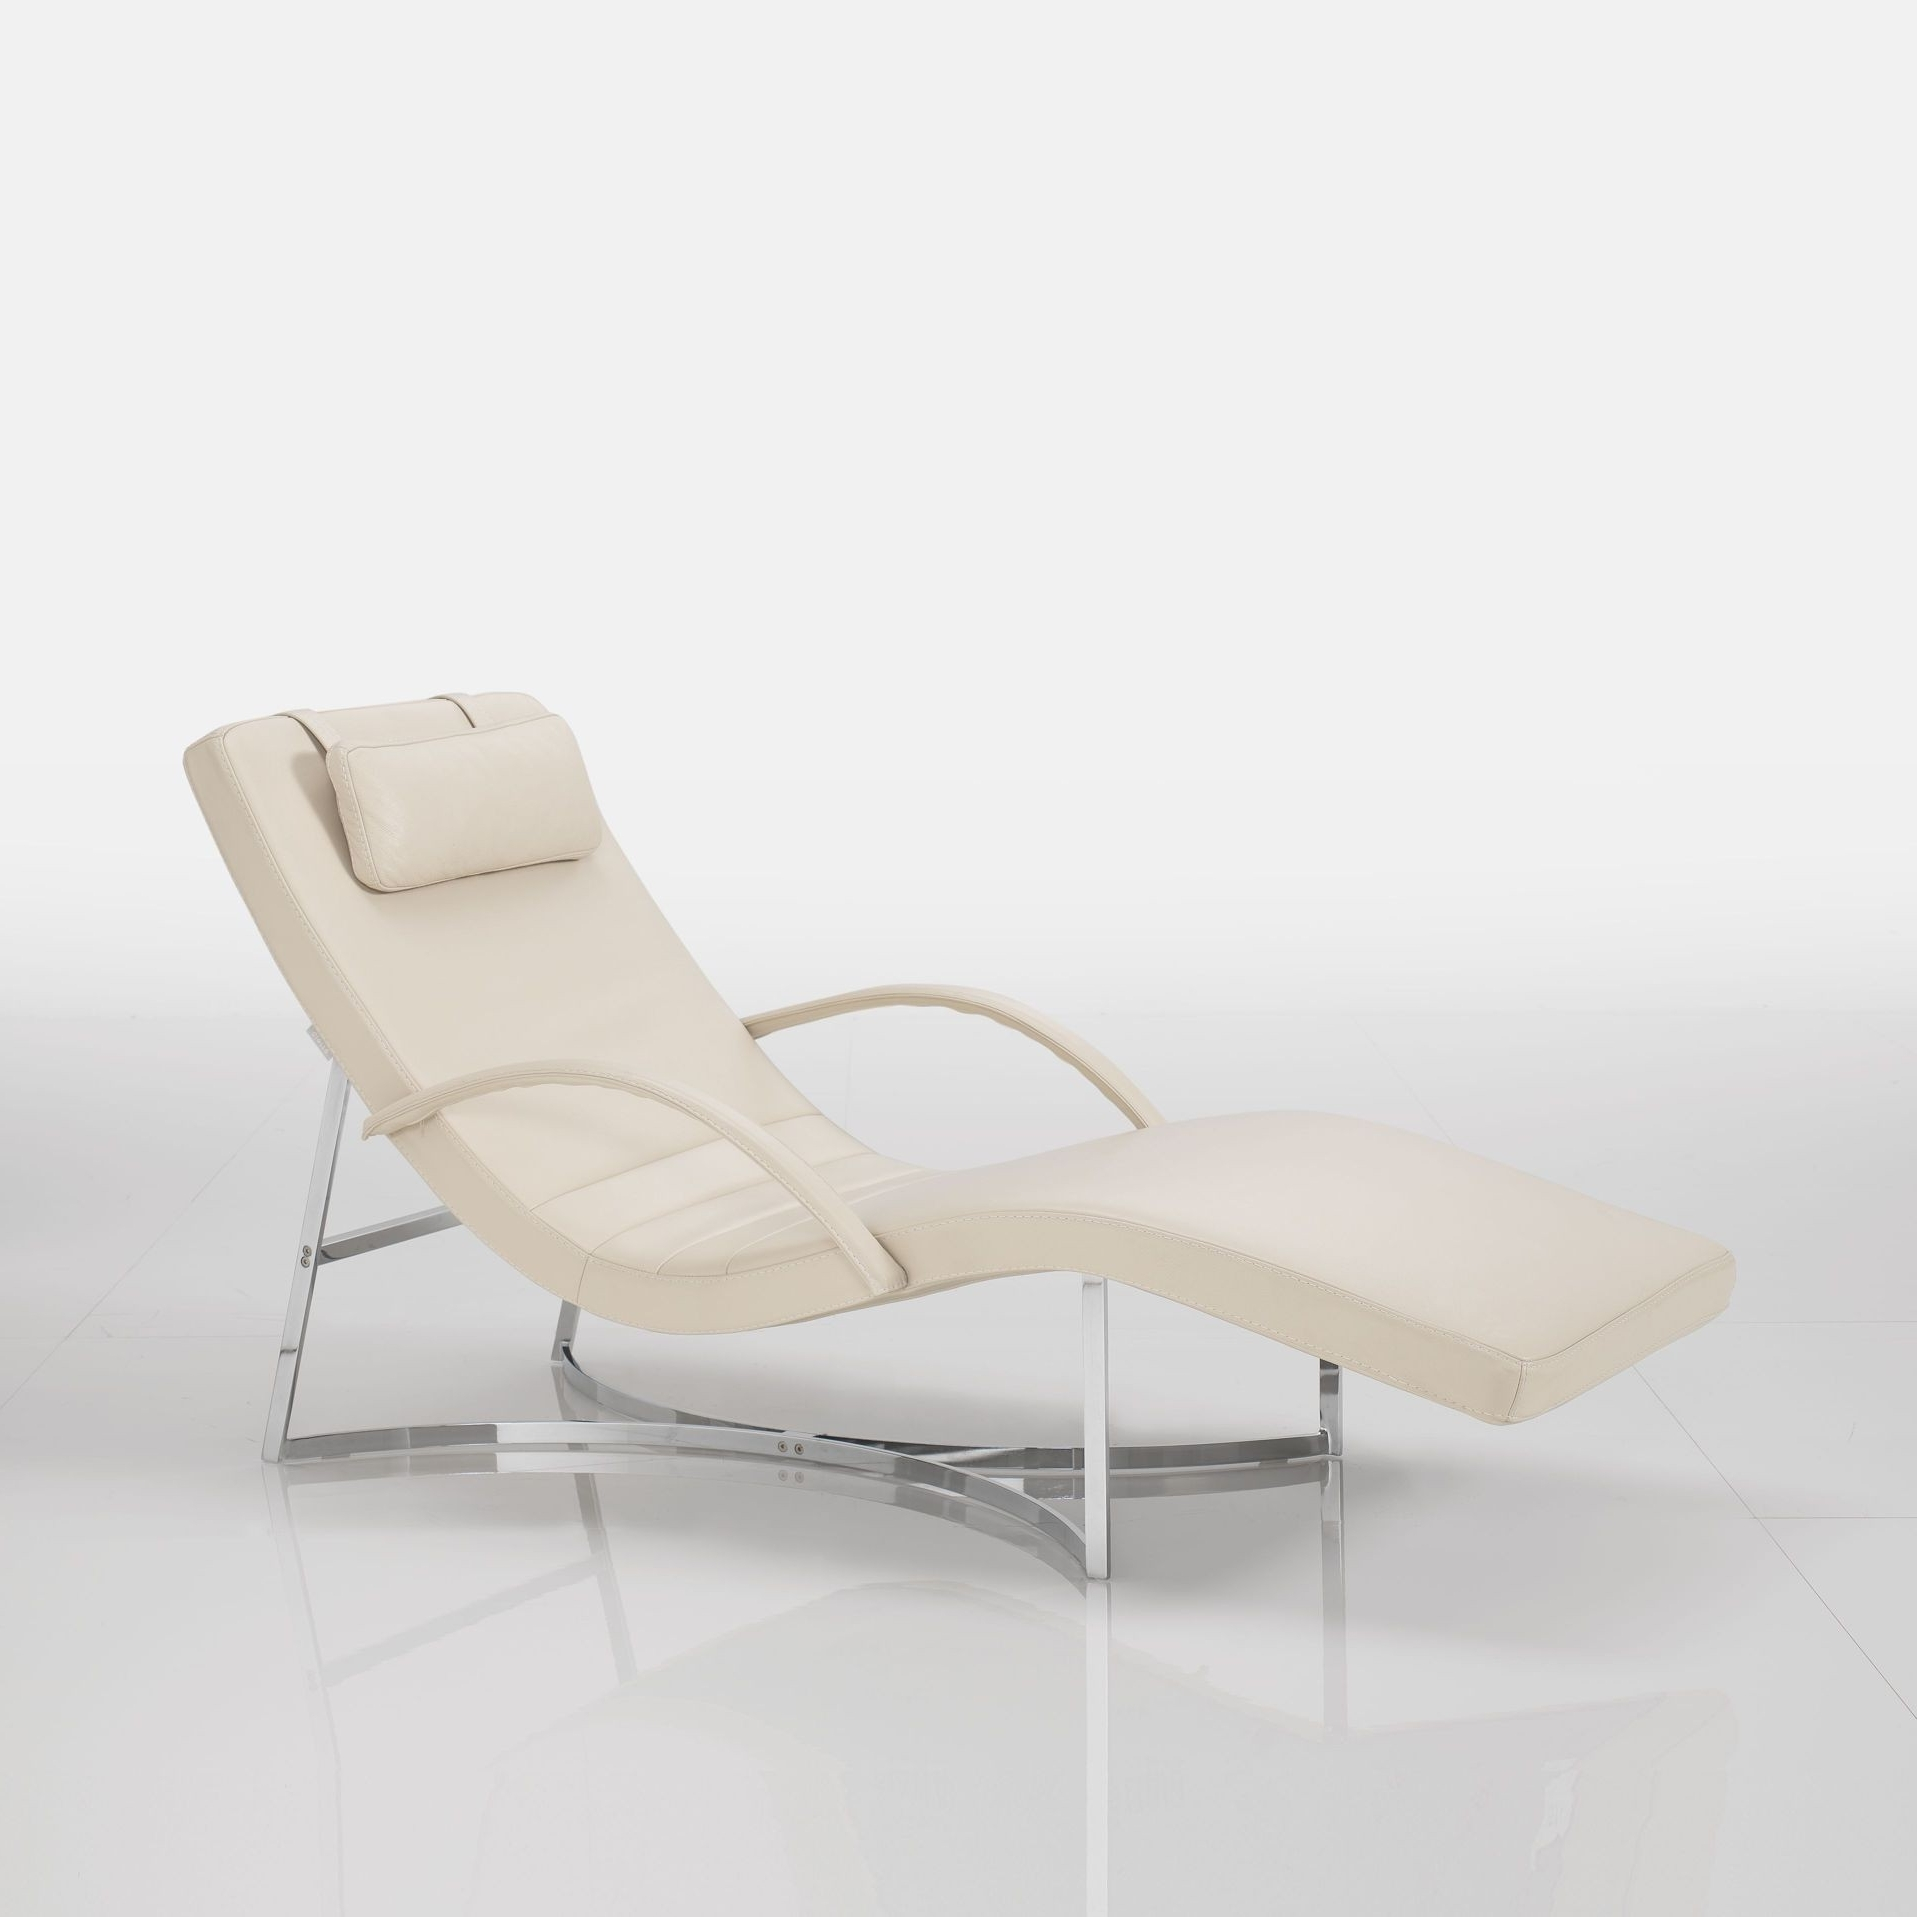 Modern Chaise Lounges With Regard To Popular Vulcano Modern Chaise Lounge (View 12 of 15)